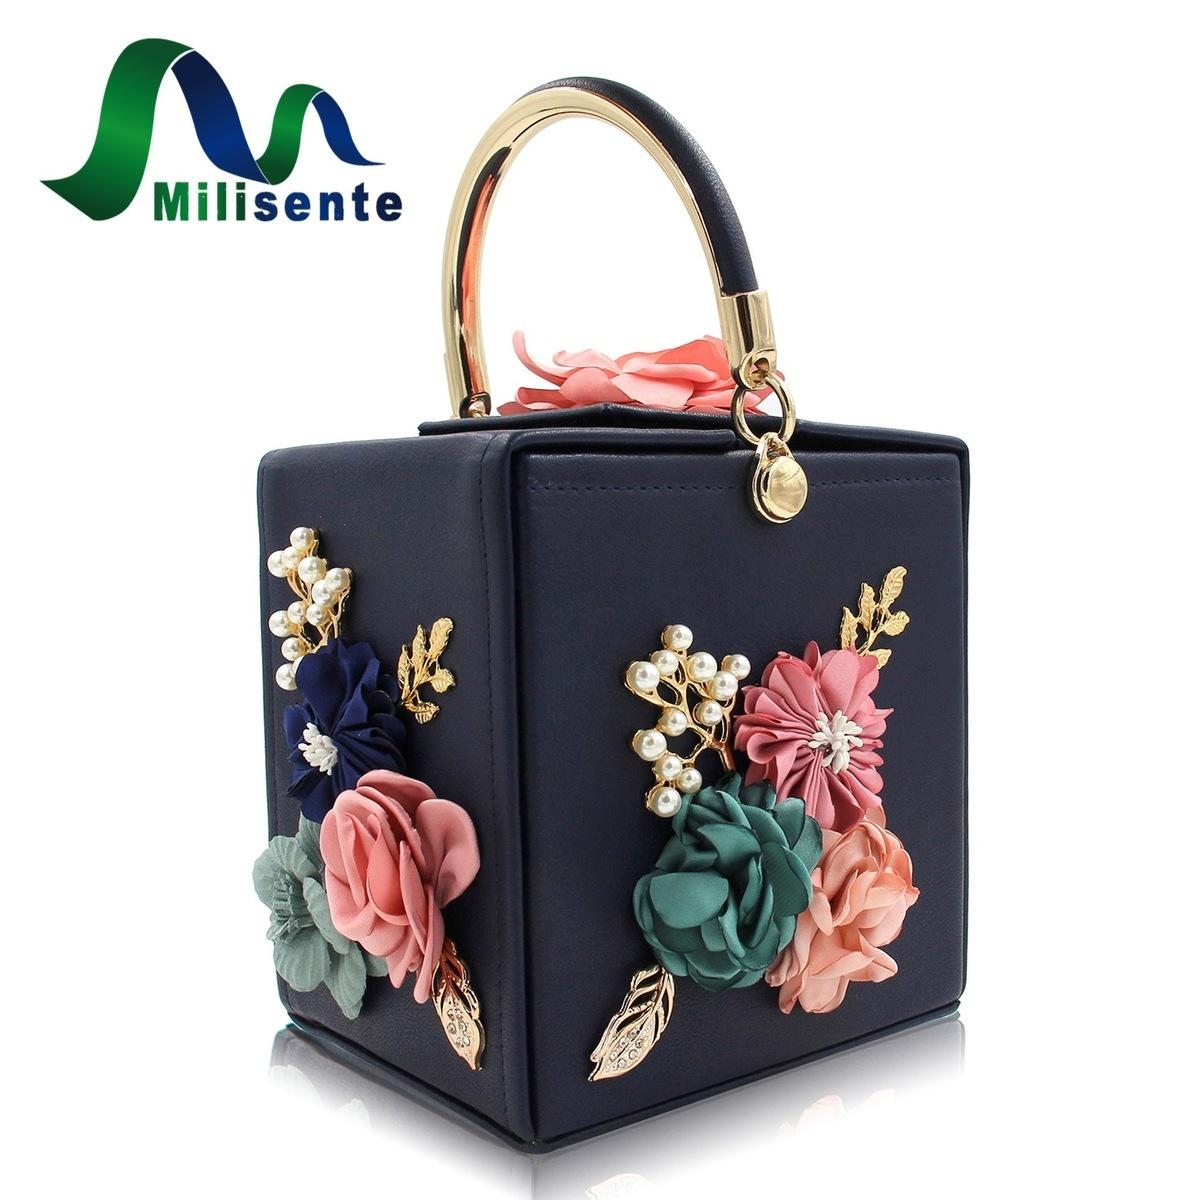 Milisente Brand Women Flower Wedding Party Clutch Purse Ladies Evening Bag  Royal Blue Day Clutches With Pearl Chain Leather Handbag Womens Handbags  From ... 33ac190d8